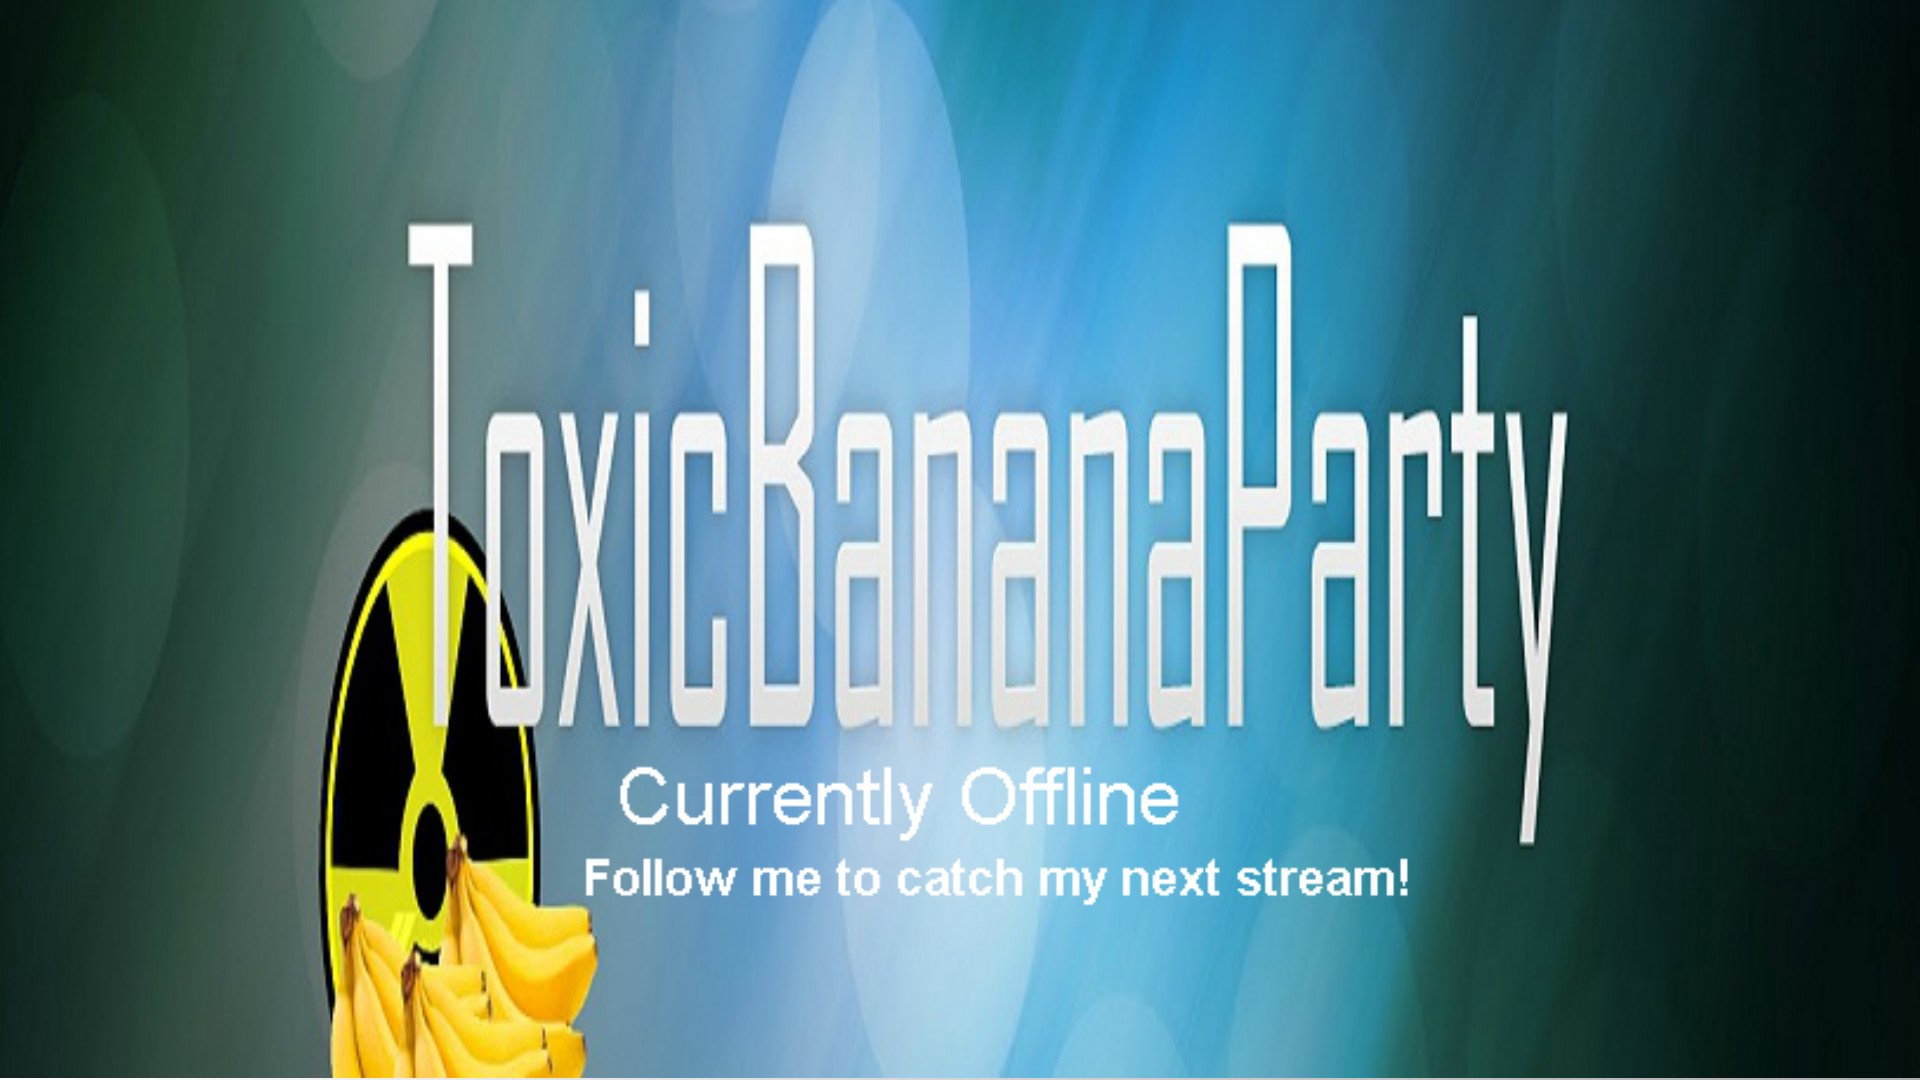 Twitch stream of toxicbananaparty